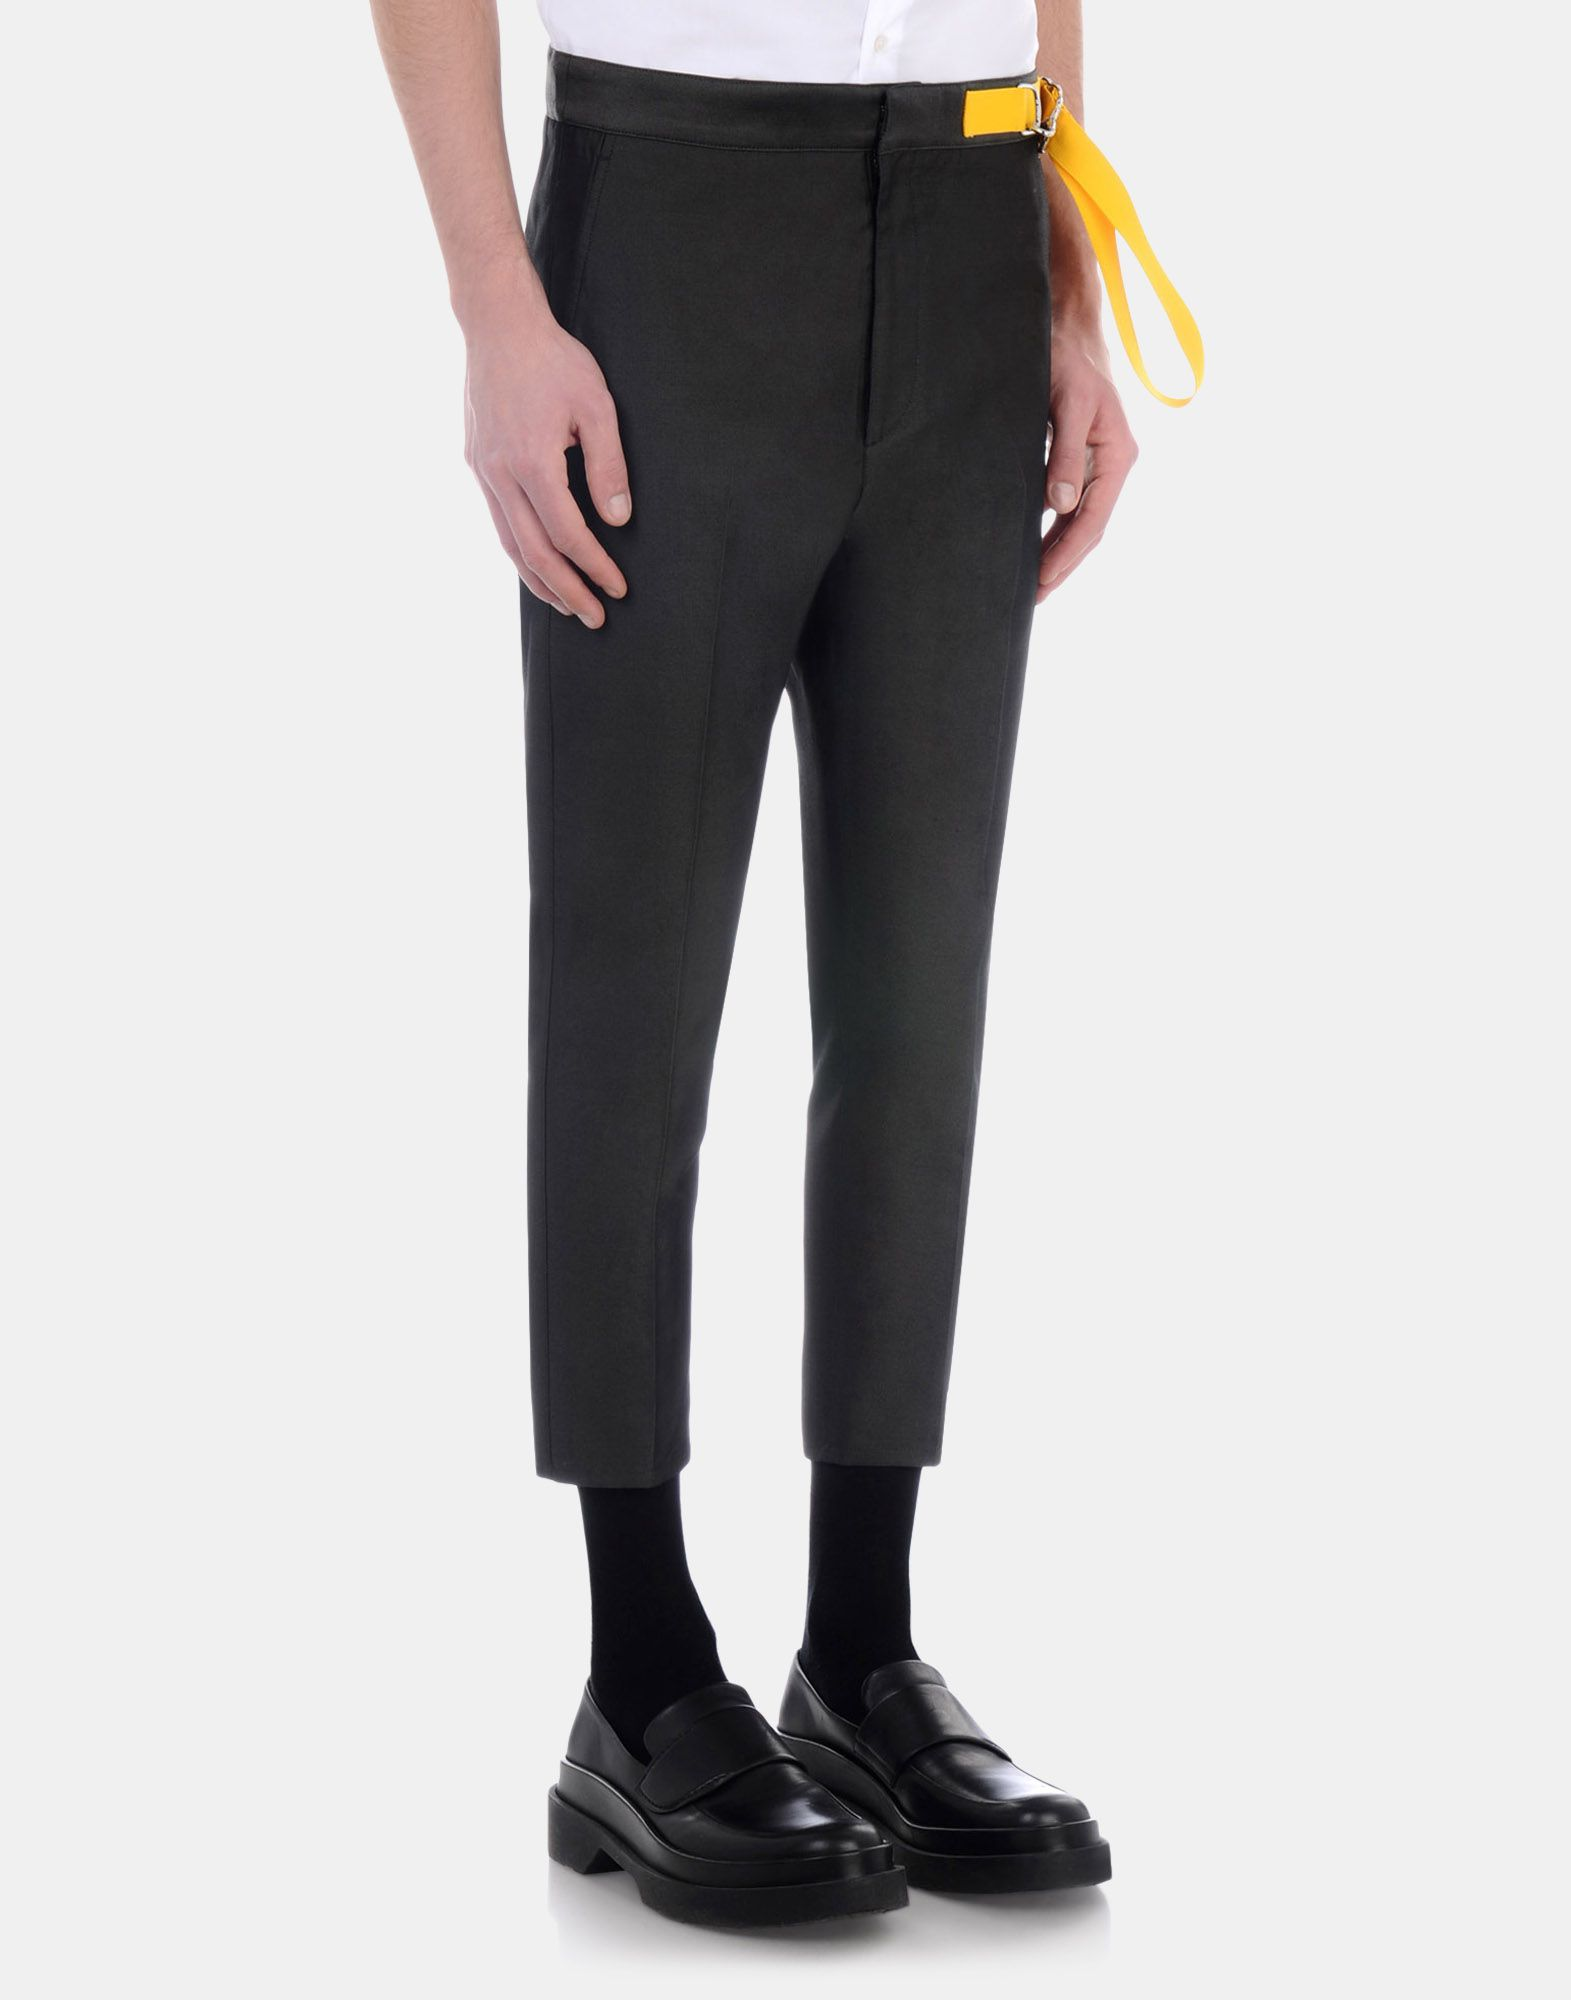 Casual Pants For Men Online